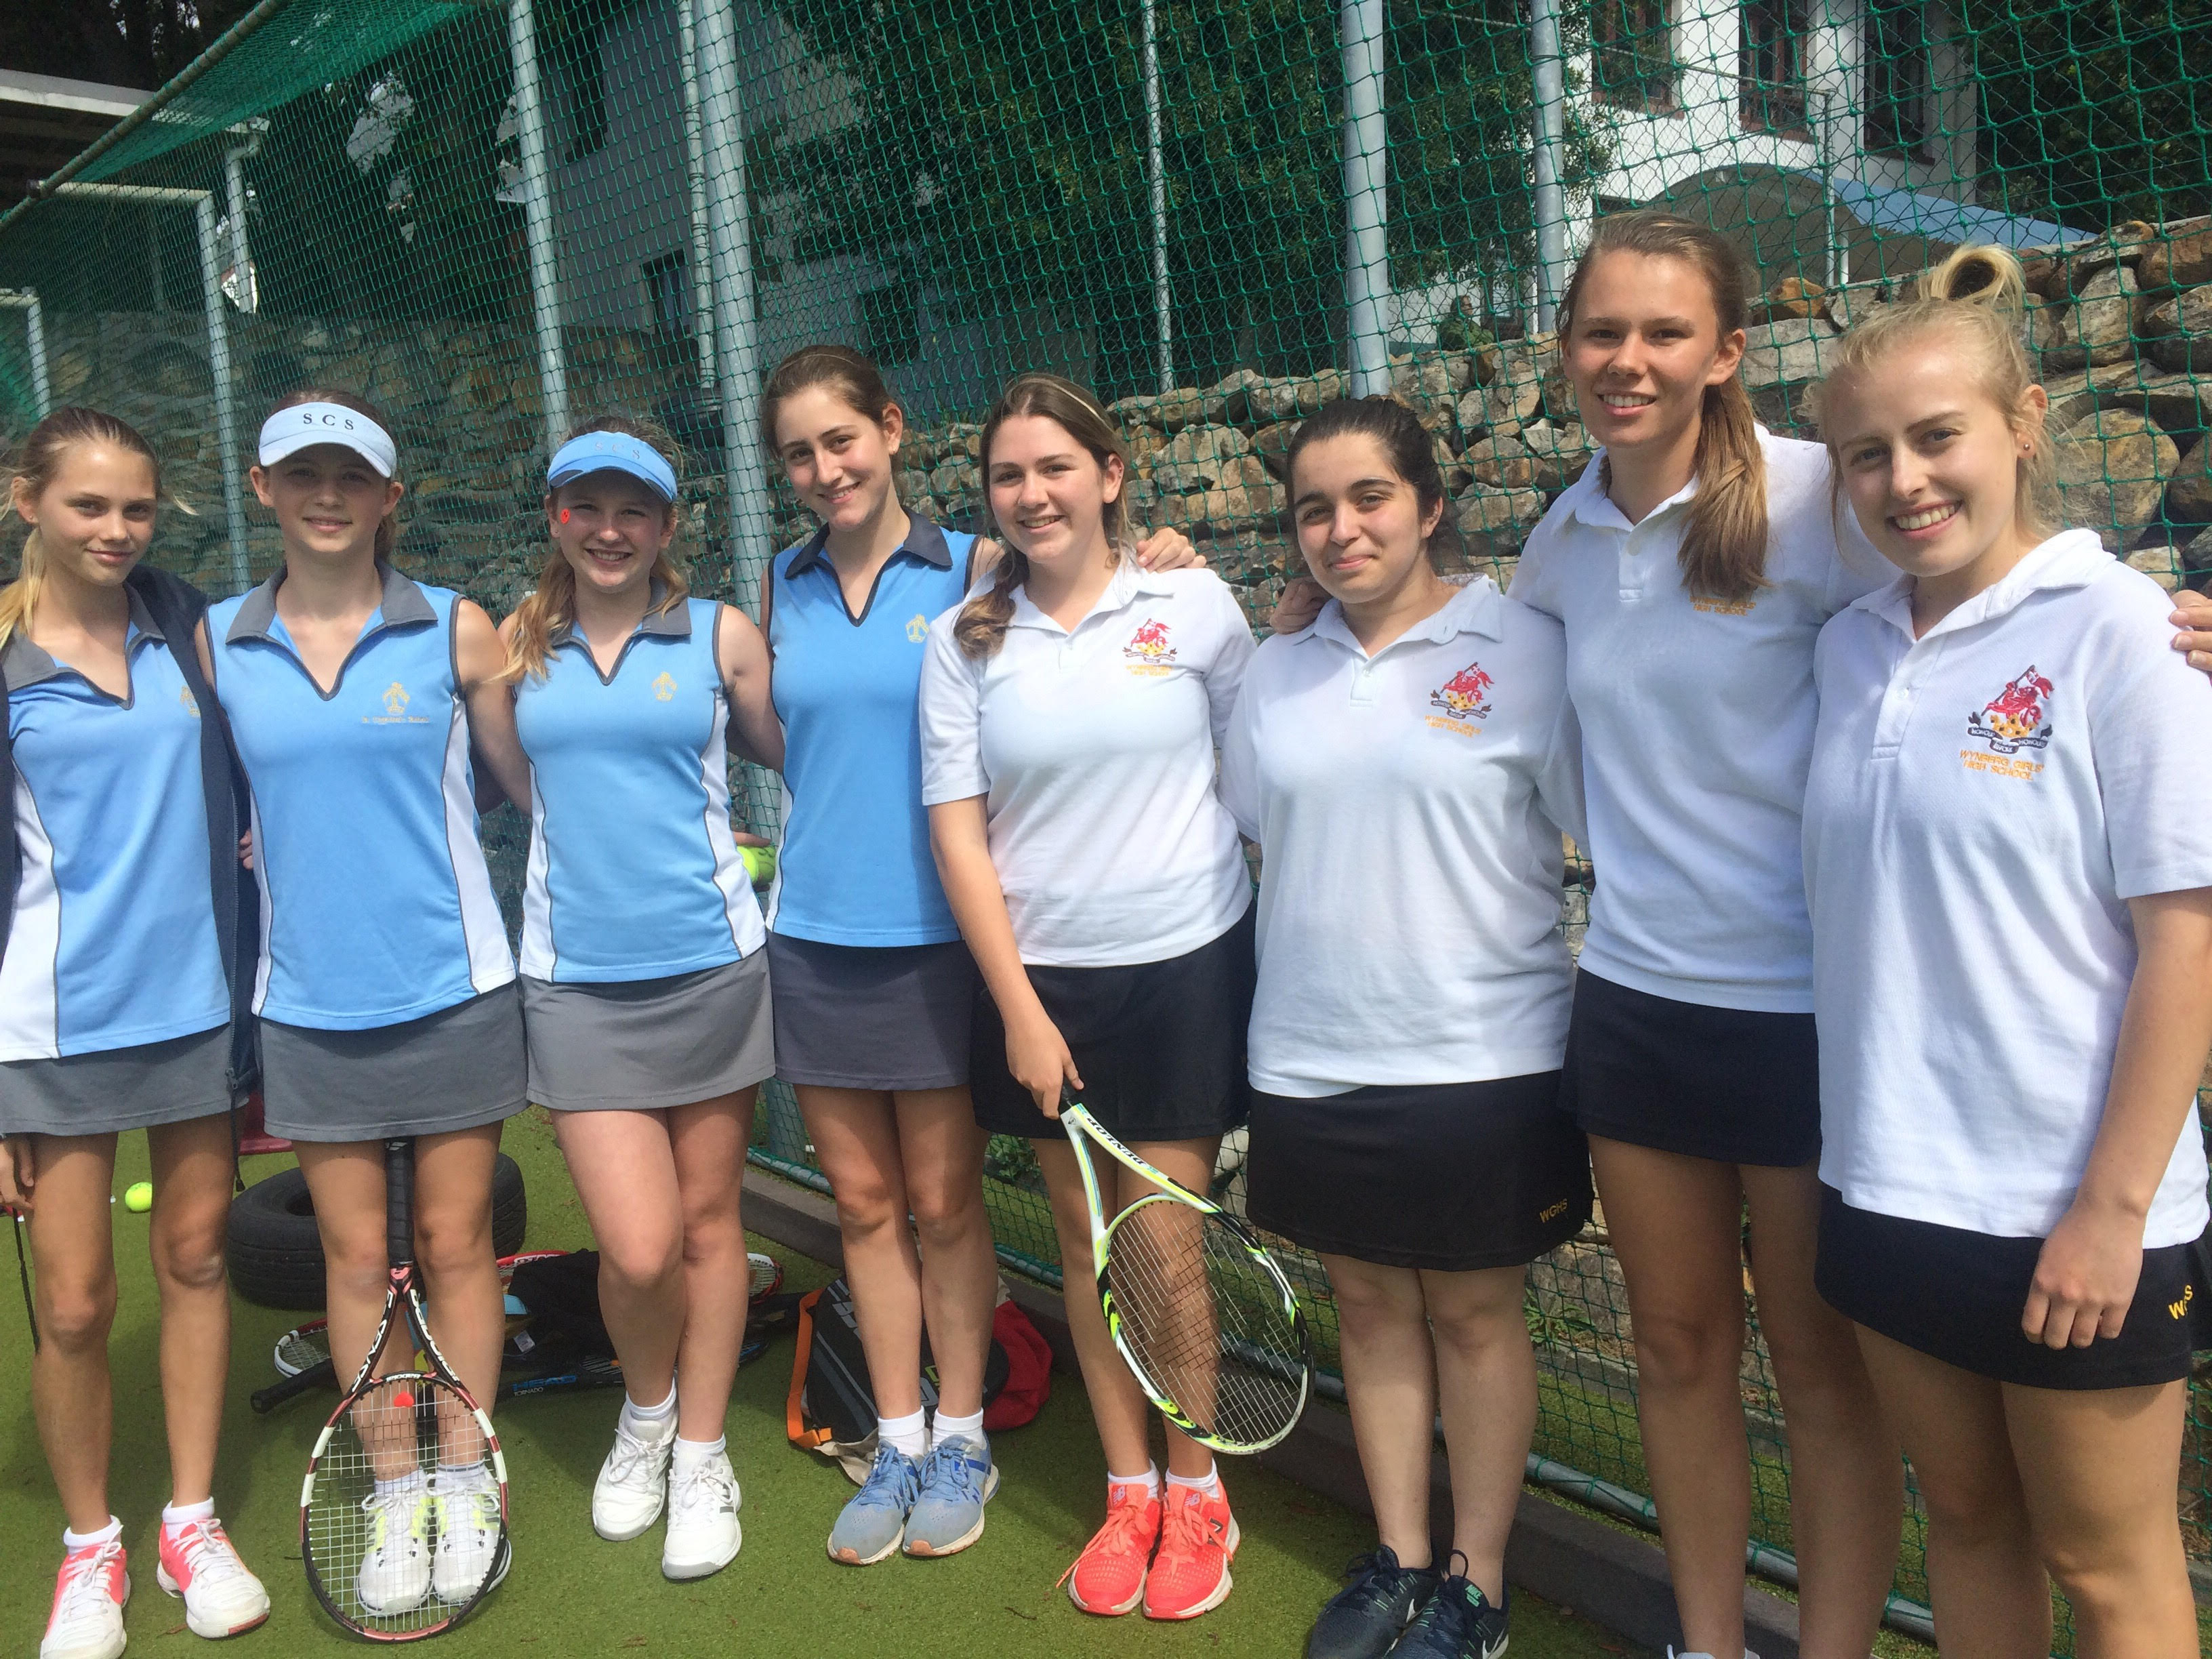 Wynberg and St Cyprian's 1st Tennis Team